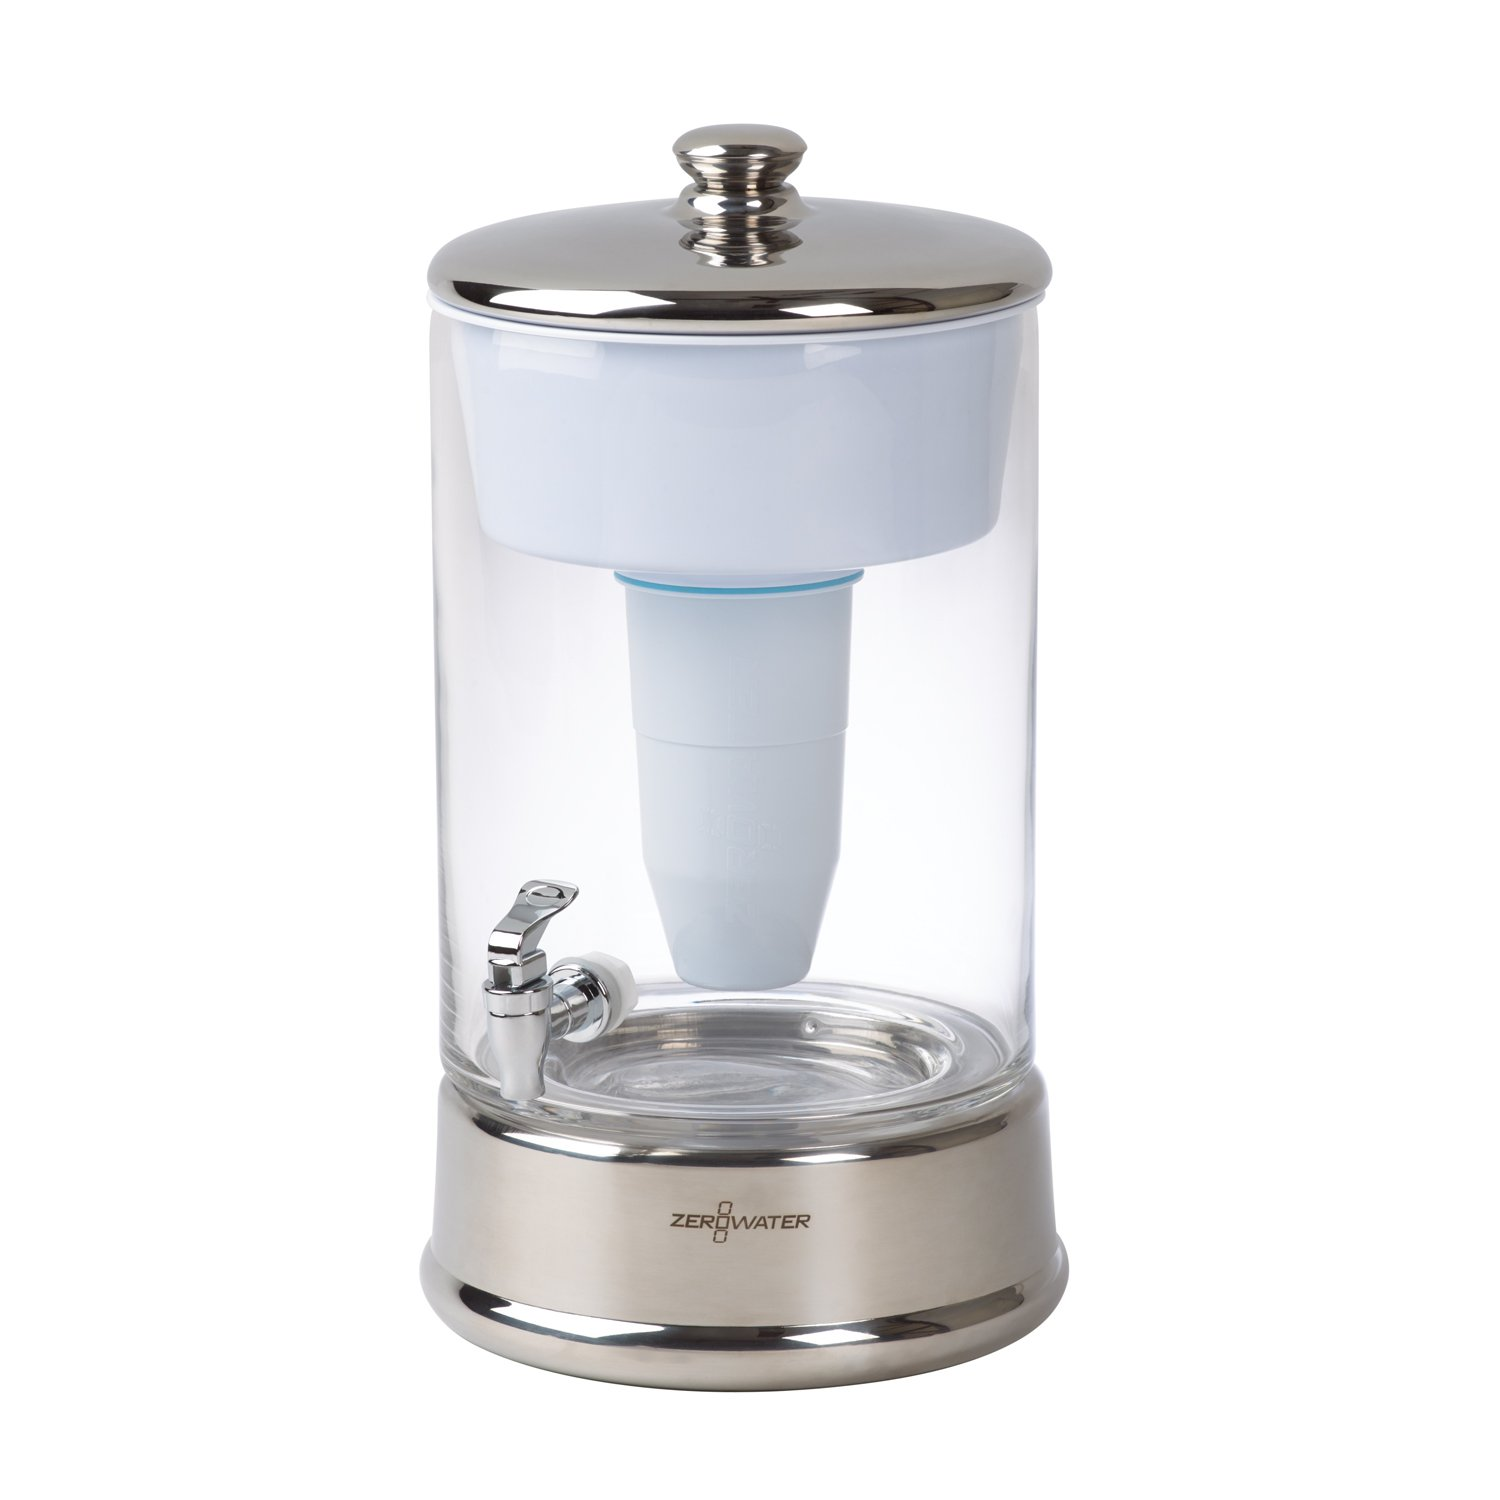 ZeroWater 40 Cup Ready-Pour Glass Dispenser BPA-Free with Free Water Quality Meter NSF Certified to Reduce Lead and Other Heavy Metals